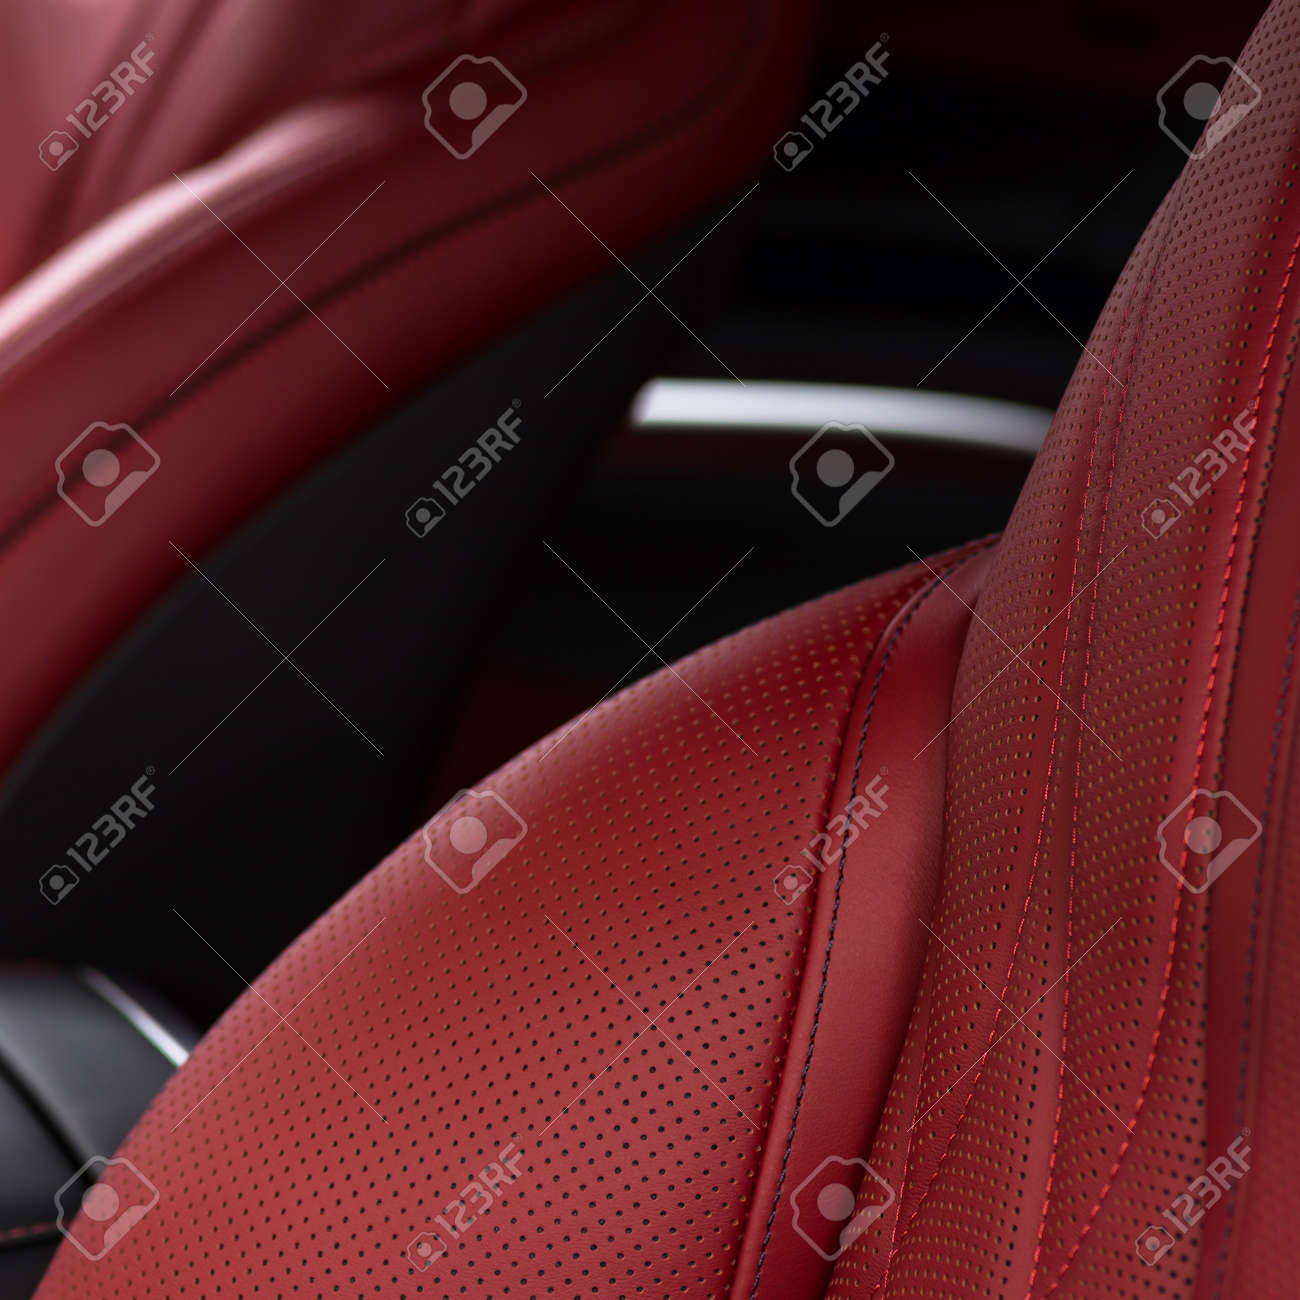 Leather material in modern car. Macro photo. - 167358706